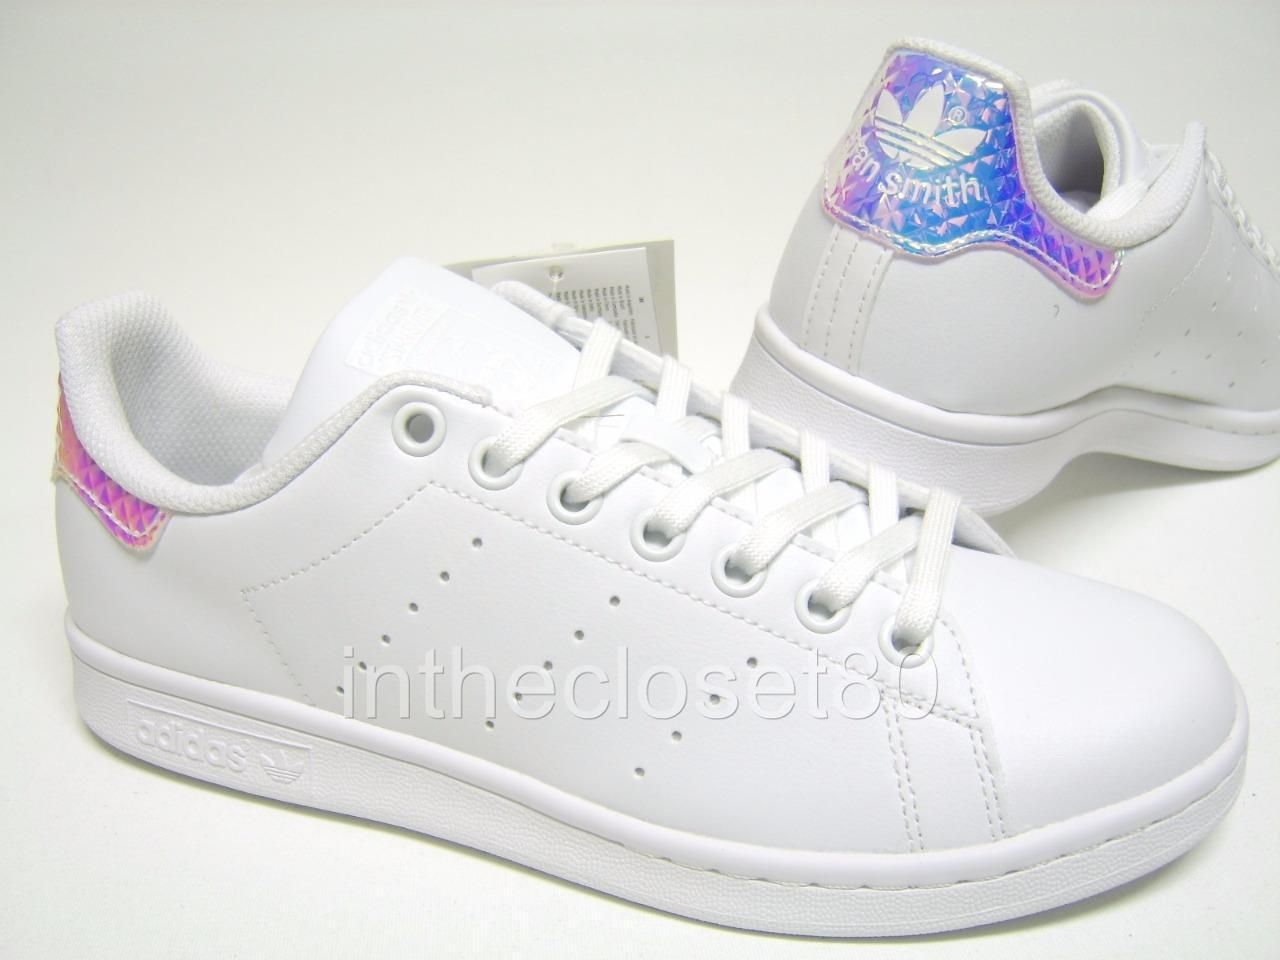 sports shoes 55e68 9454d Adidas Stan Smith Iridescent 3D GS White Shiny Silver Juniors Girls Women  CG2954   eBay